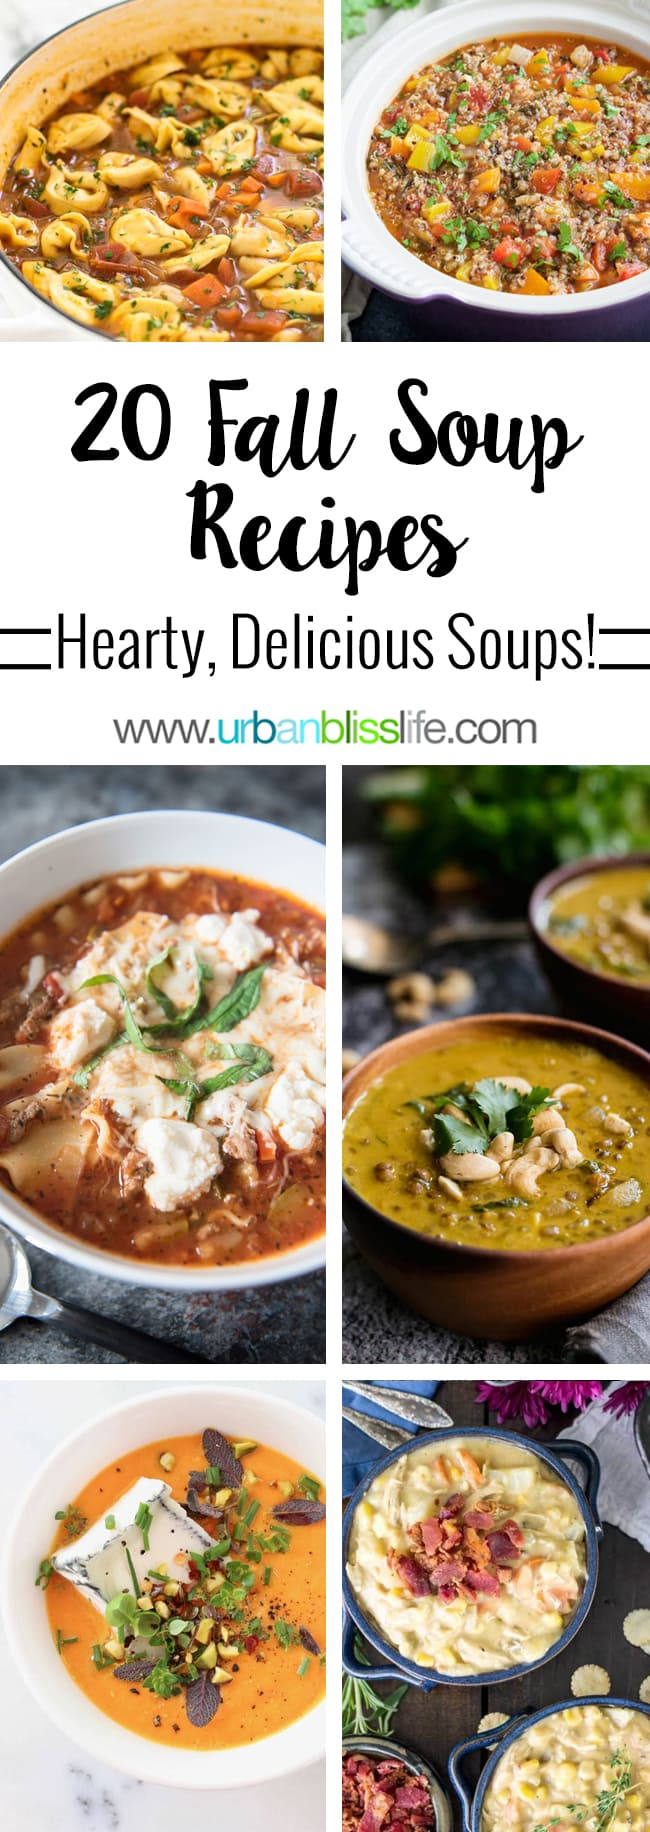 20 best fall soup recipes to keep you warm and toasty! Get the recipes on UrbanBlissLife.com.